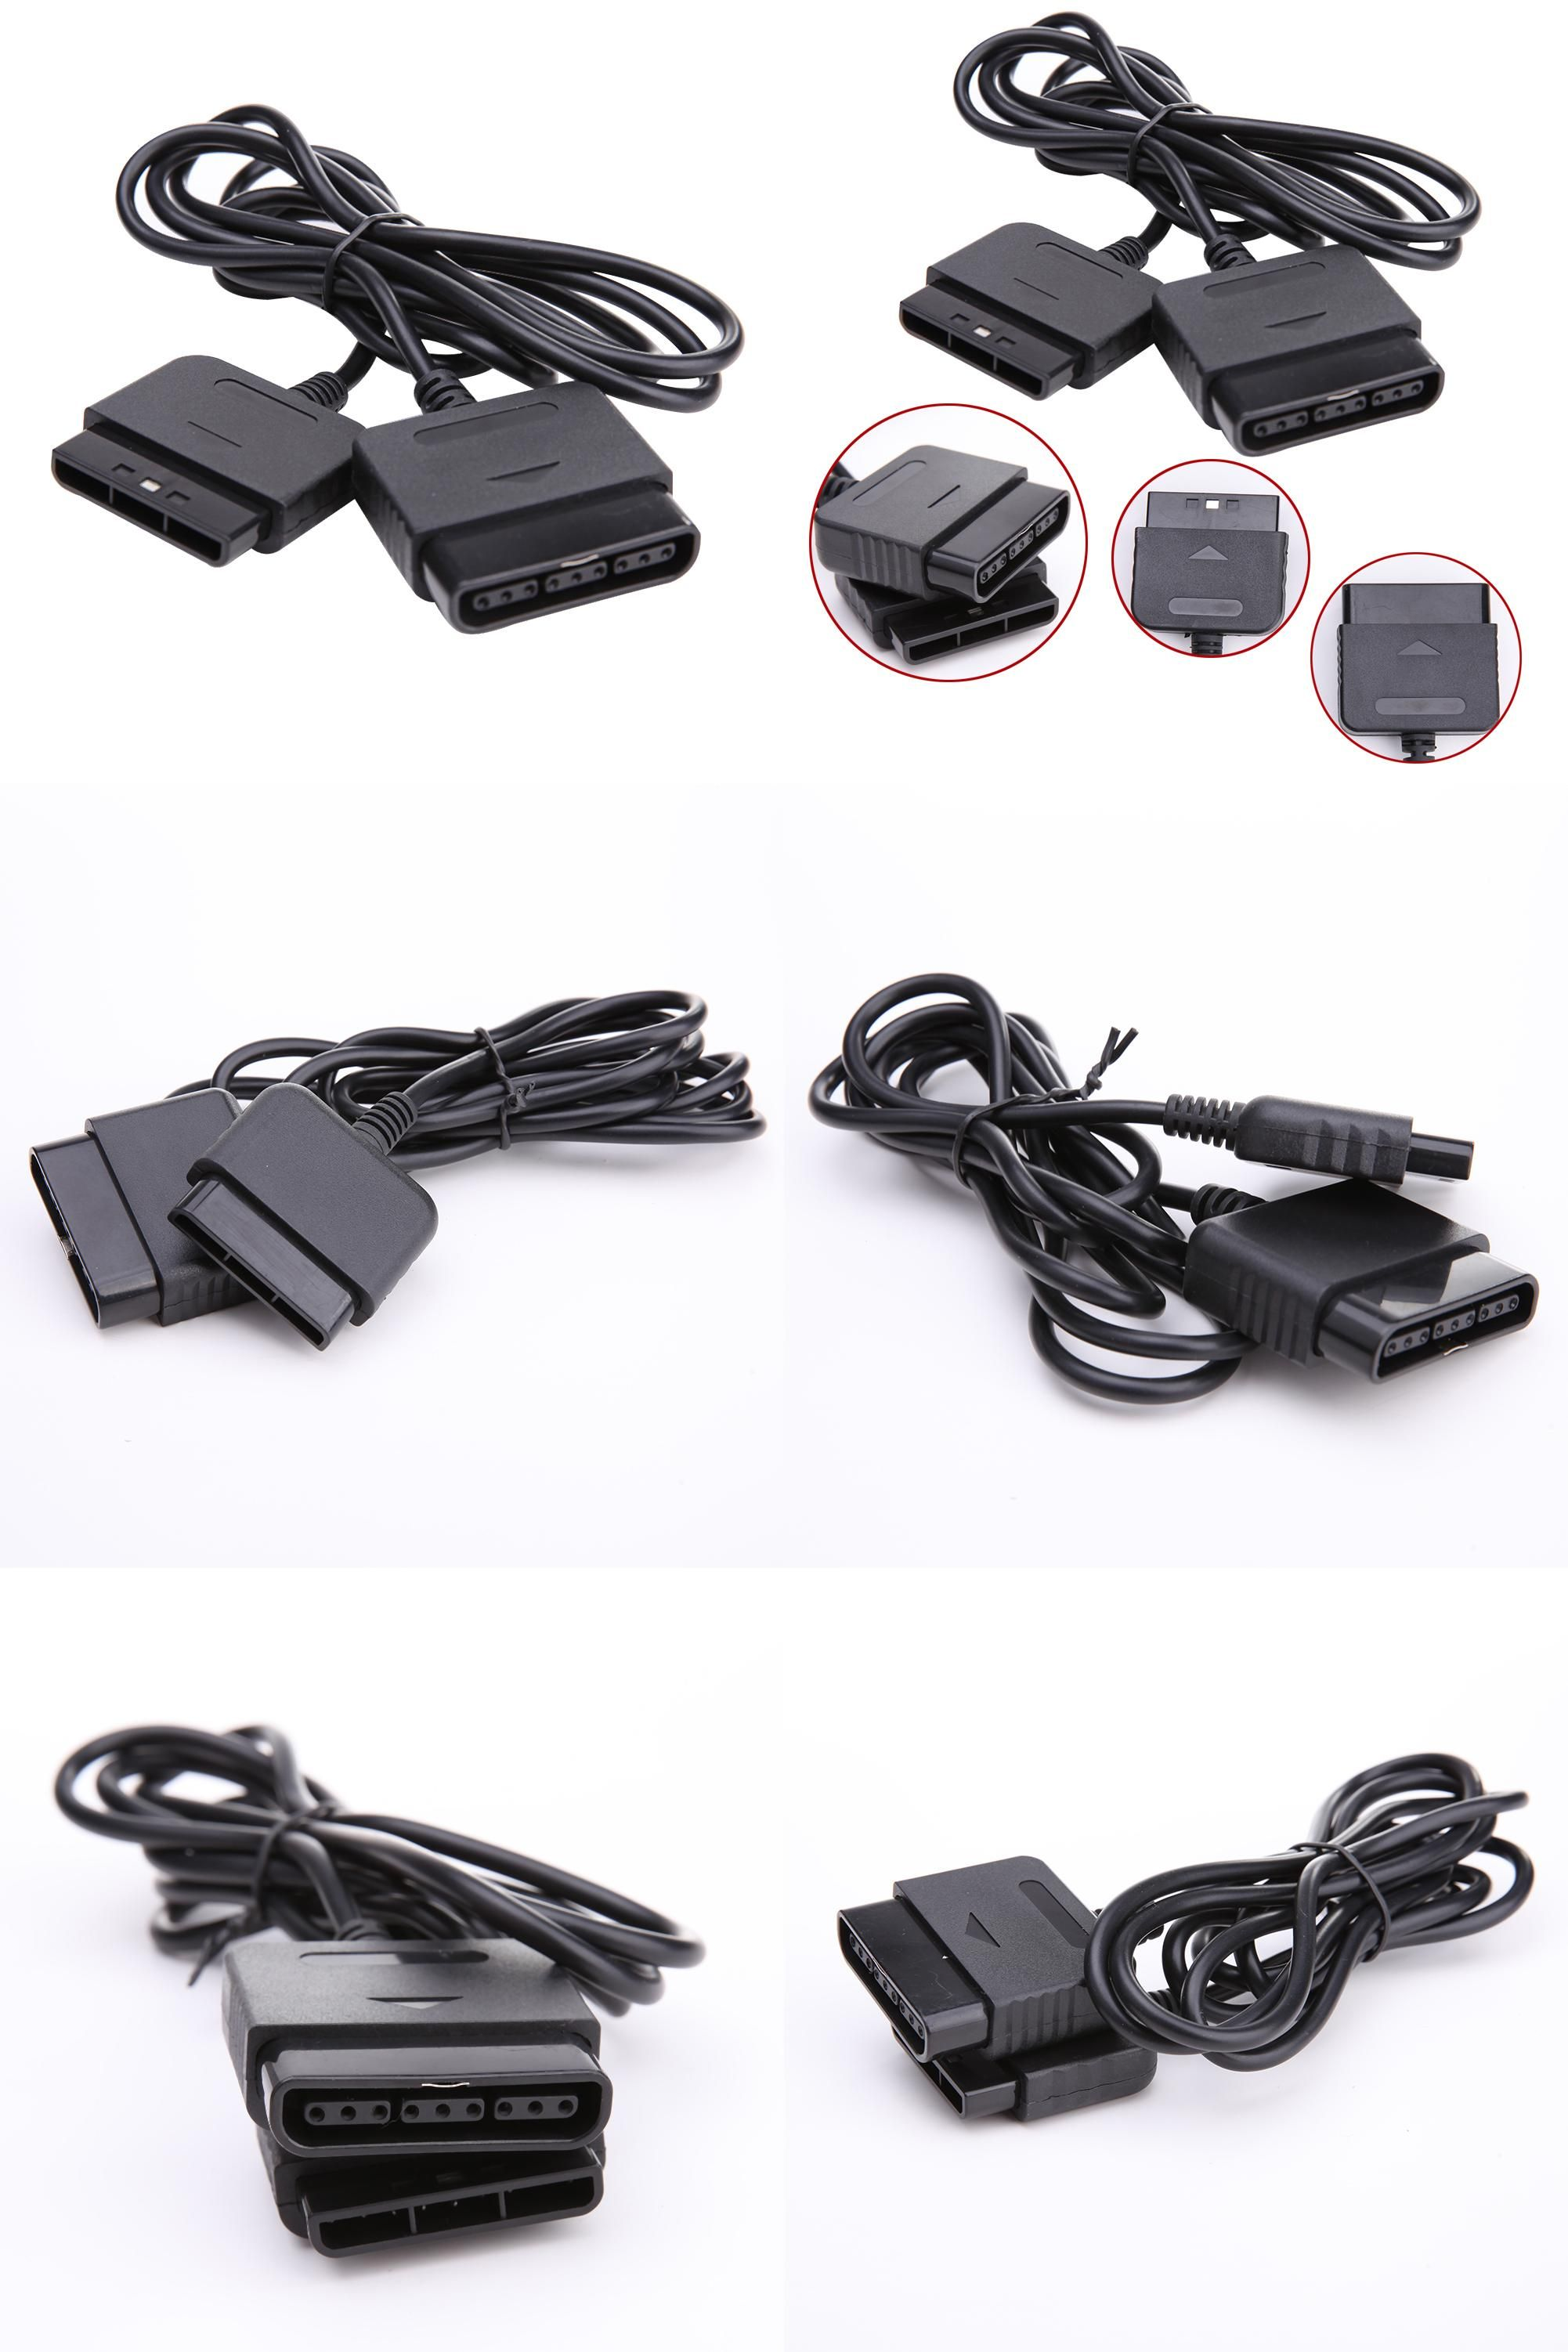 Visit to Buy] 1.5m Gamepad Game Controller Extension Cable Cord for ...